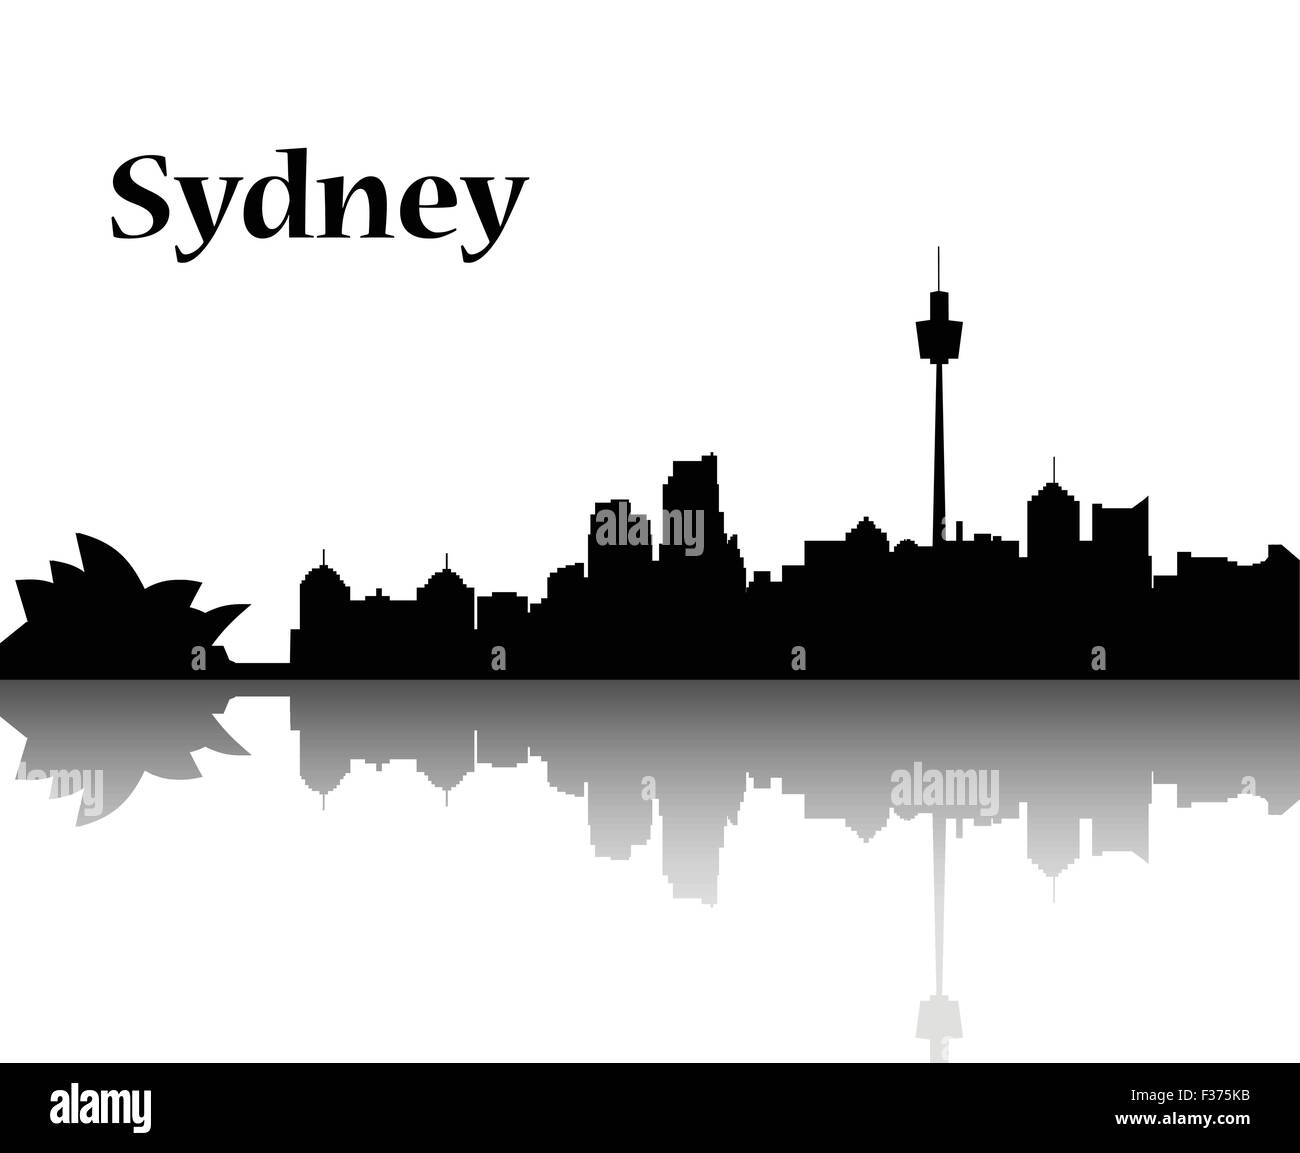 Sydney city skyline - Stock Vector